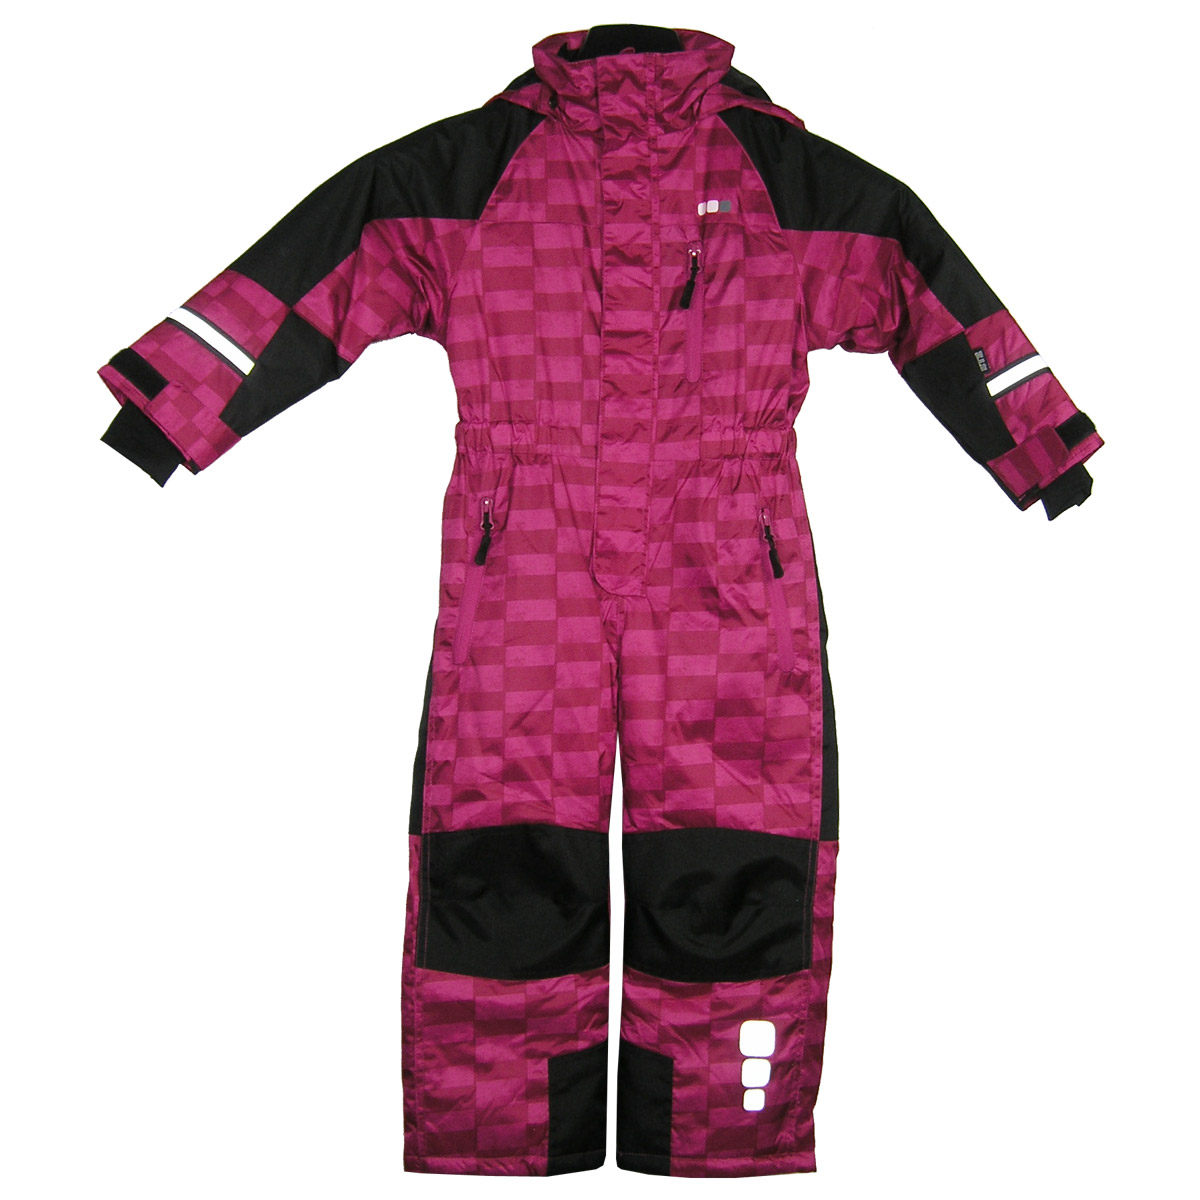 truenorth winter overall 2013 kinder schneeanzug skianzug snowboardanzug 7532200 ebay. Black Bedroom Furniture Sets. Home Design Ideas